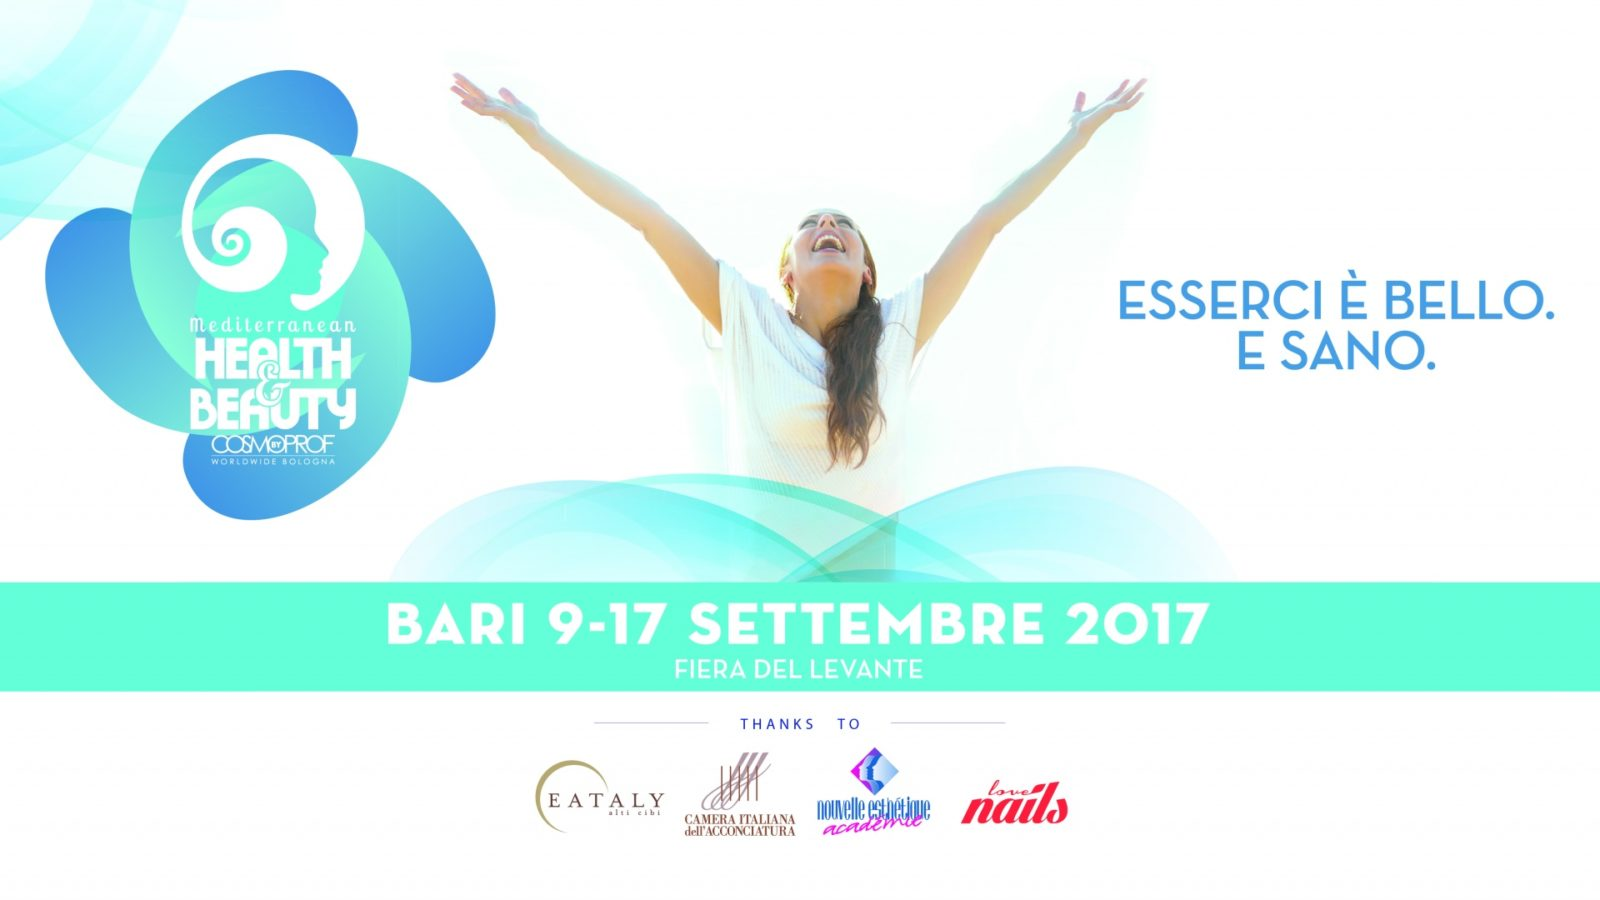 Mediterranean Health & Beauty By Cosmoprof Bologna Ed. 2017. Photo Michele Carnimeo. Copyright Nouvelle Esthétique Académie All Rights Reserved